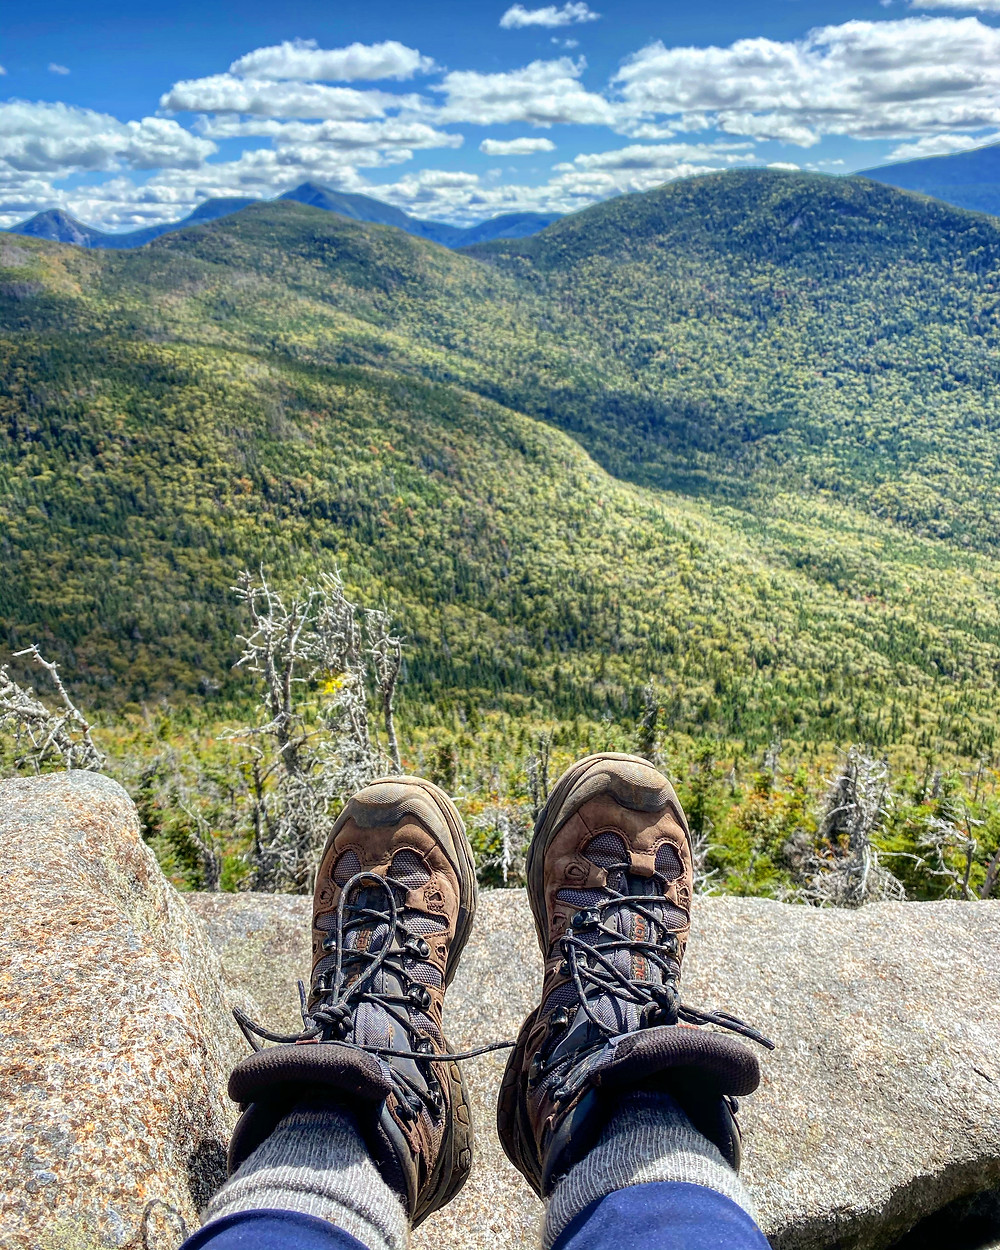 Hiking boots dangling over the ledge of a tall mountain.